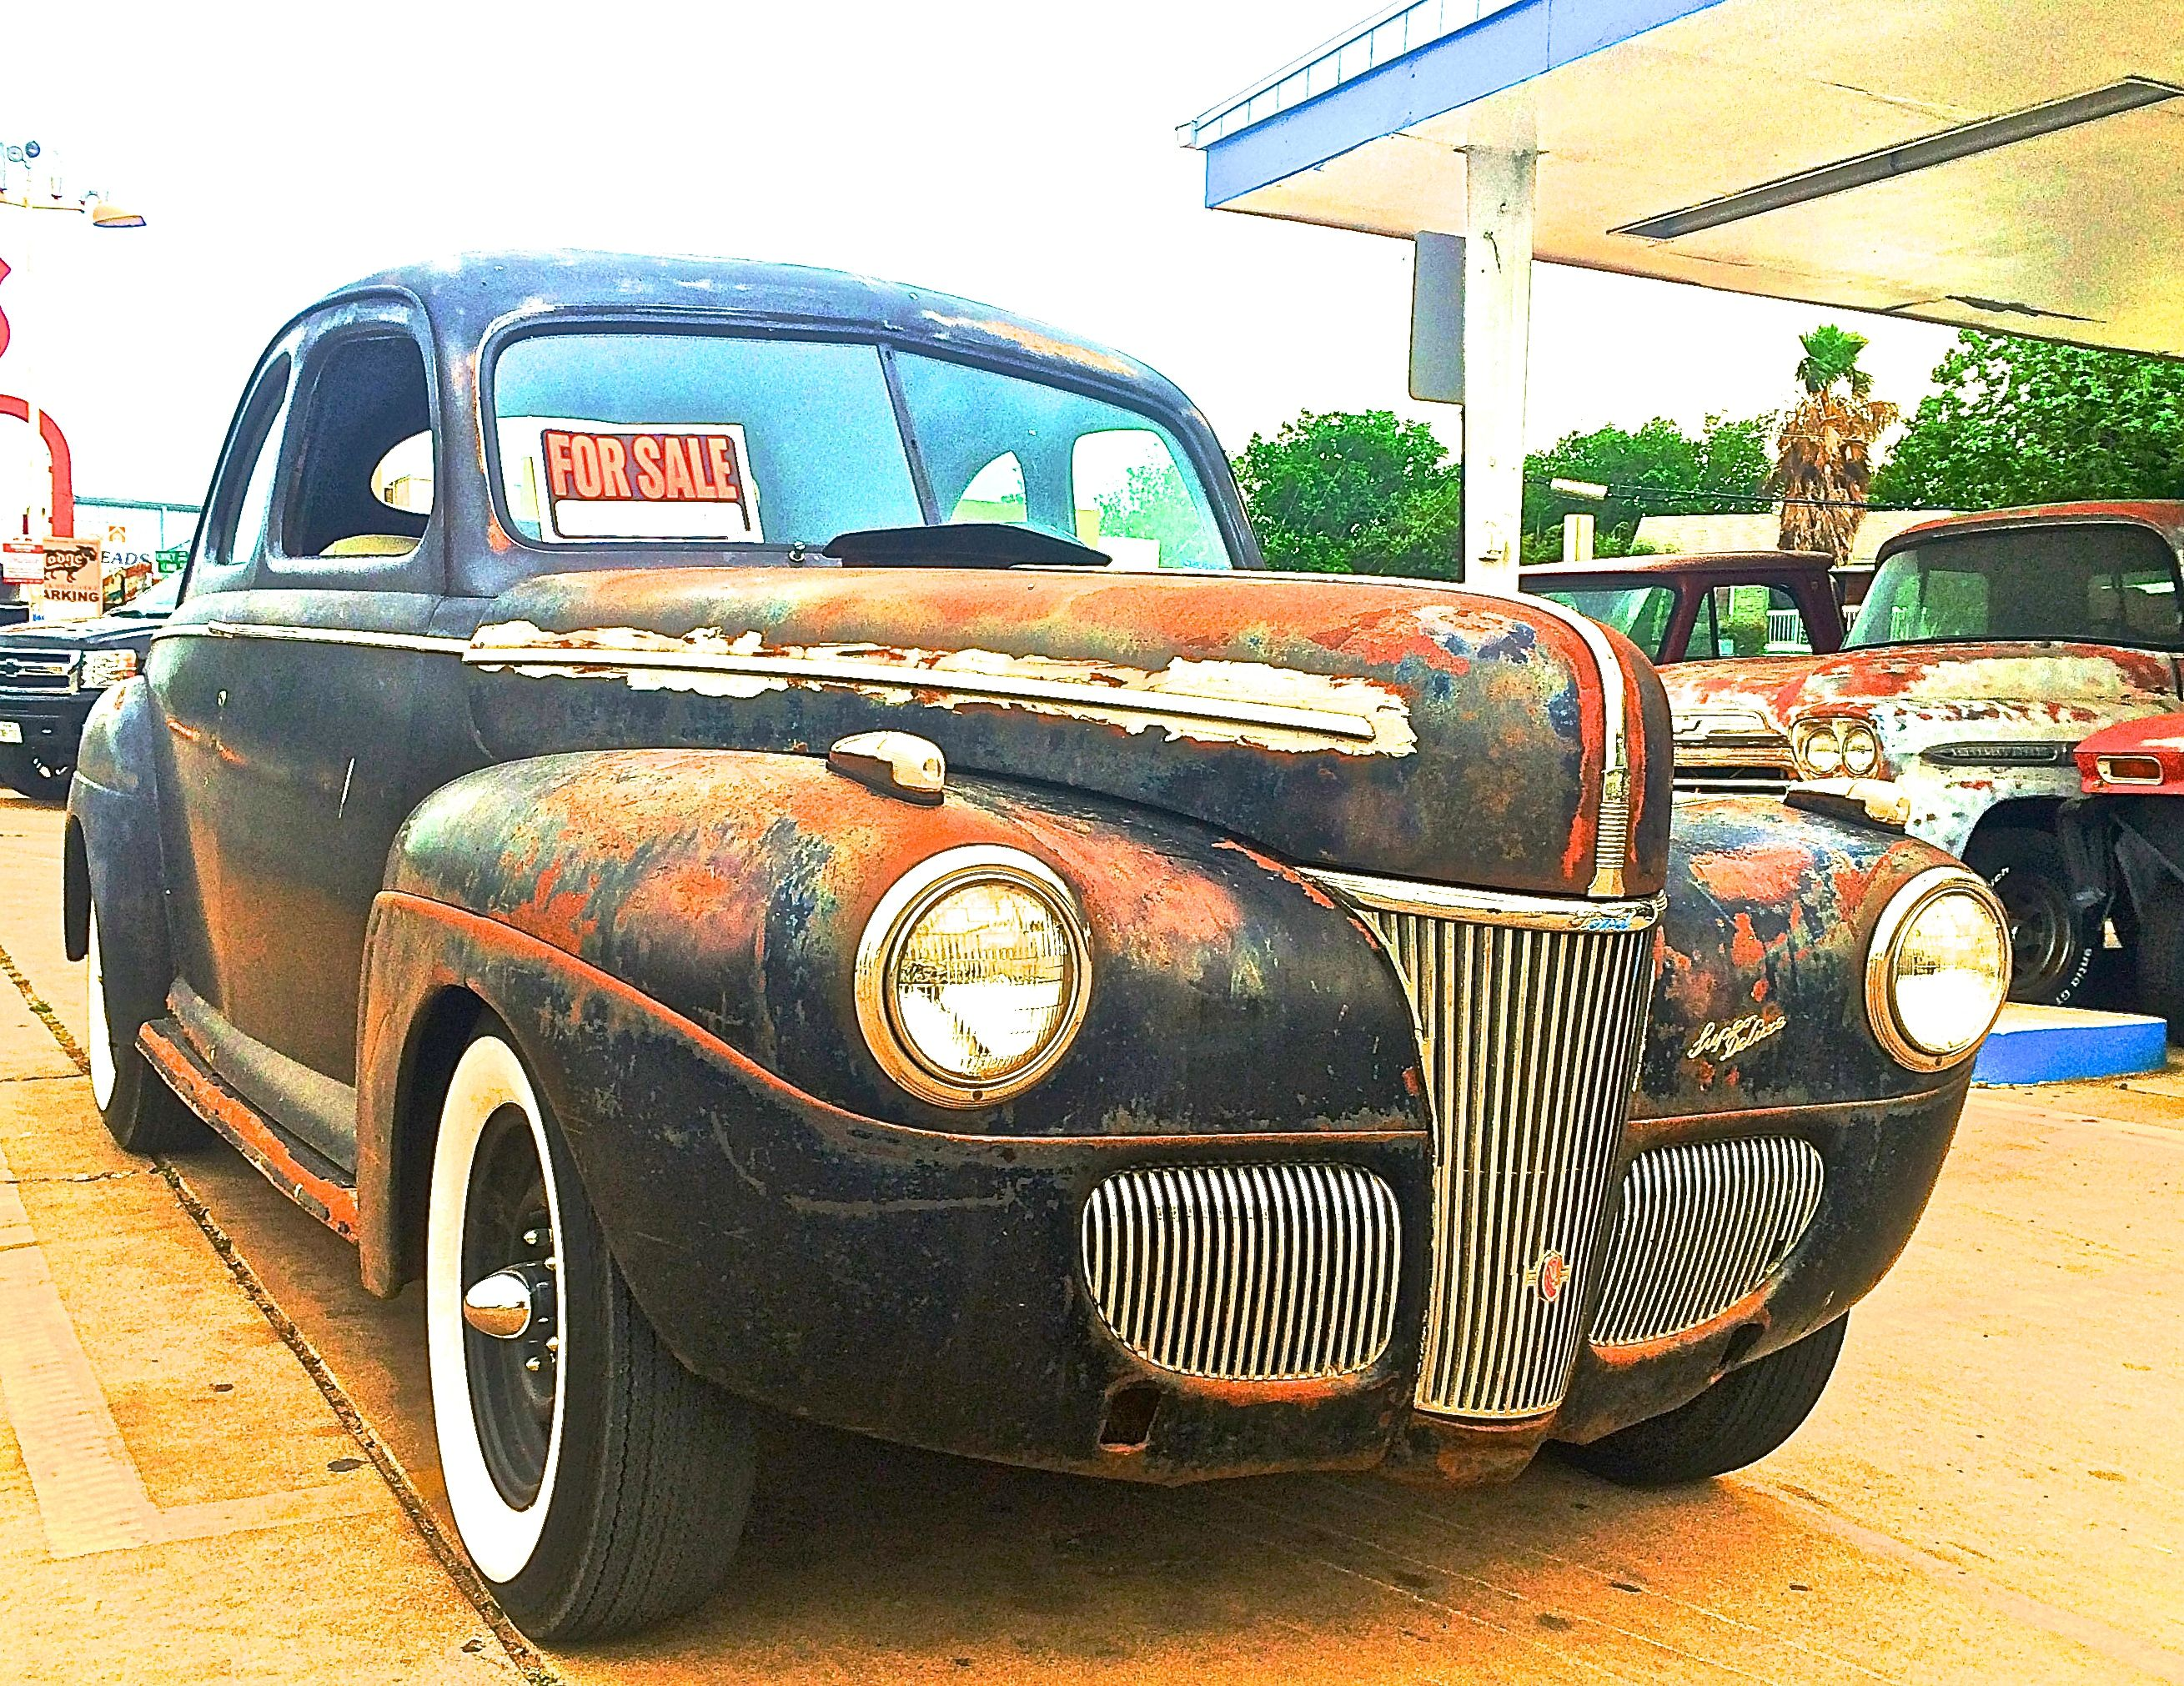 Jesse s 1941 ford business coupe for sale find this pin and more on austin tx atx cars